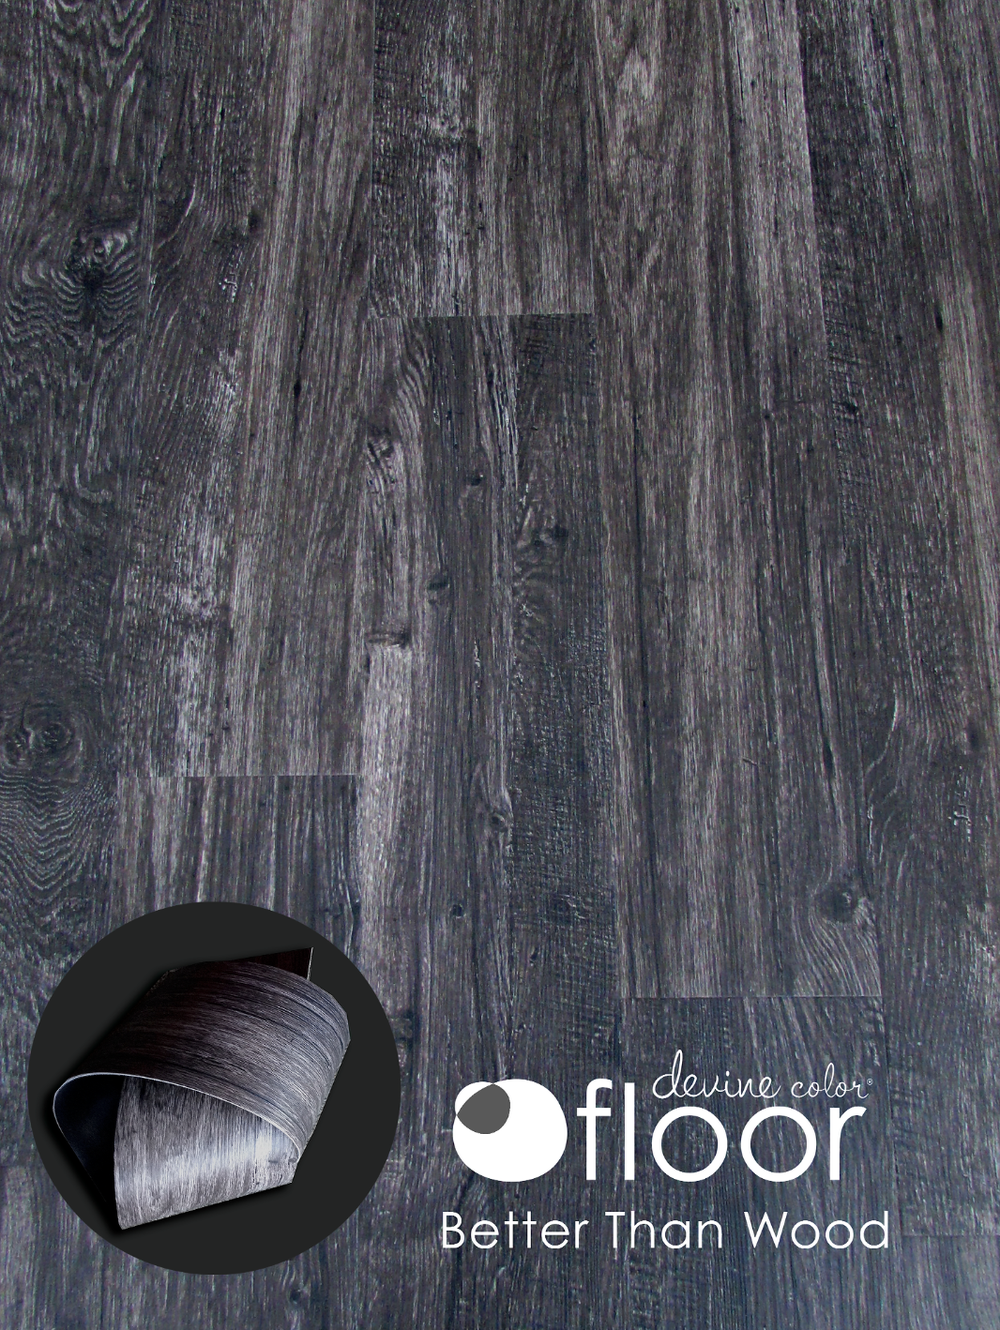 Devine Black Oak Shown. Better than wood, Devine Color Floor Contact luxury vinyl floors have commercial strength for residential living.